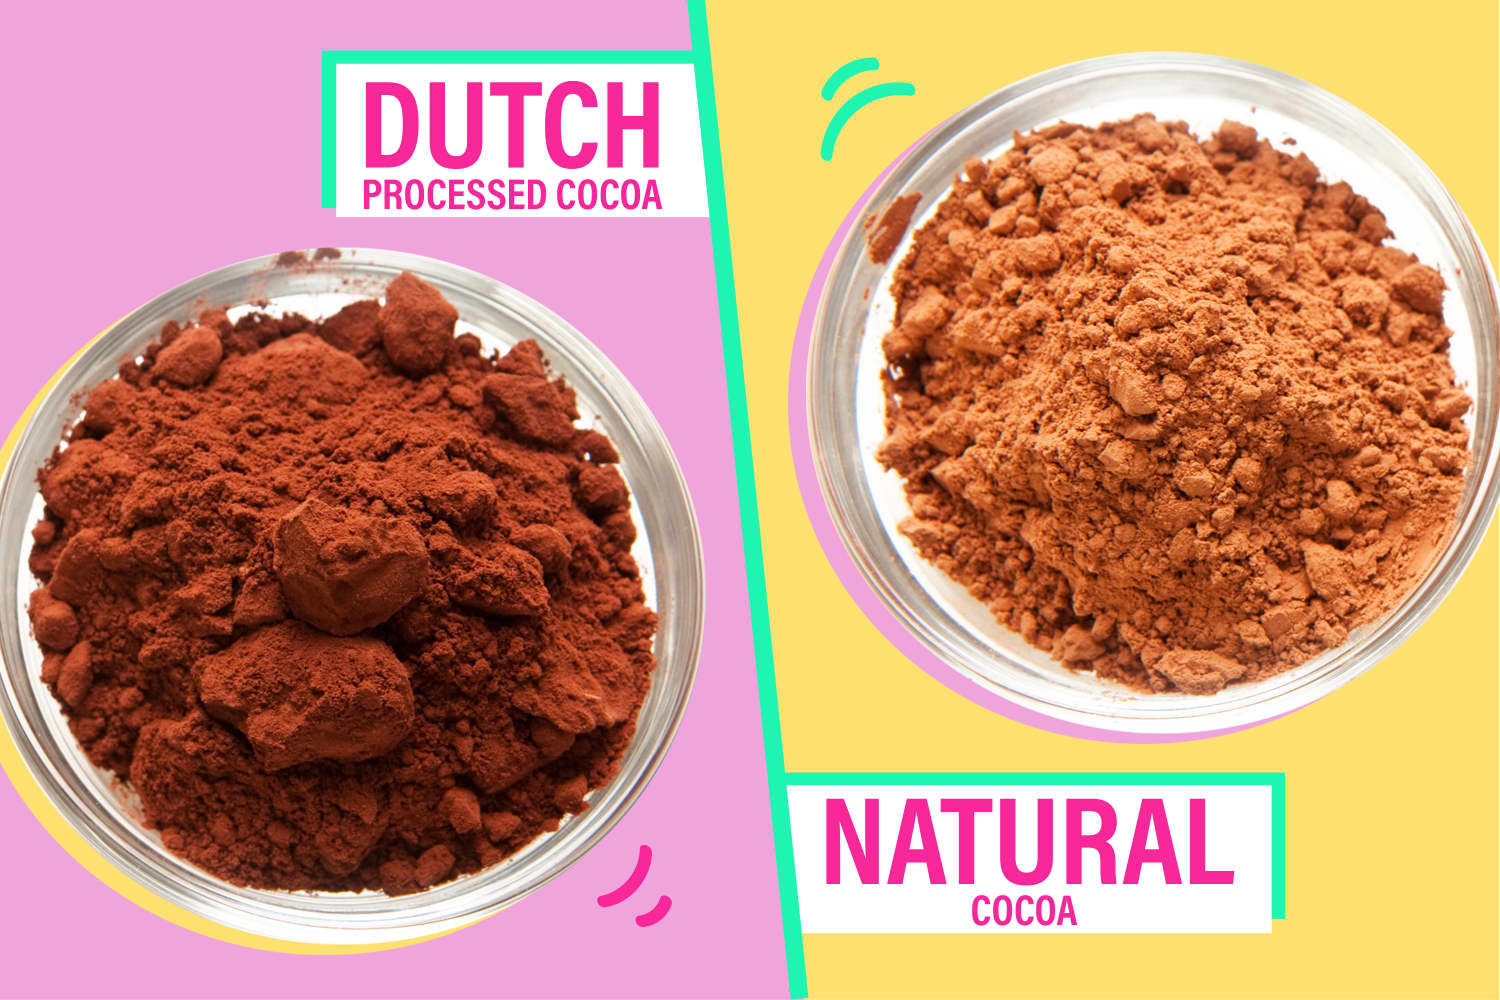 What's the Difference Between Natural and Dutch Cocoa Powder?